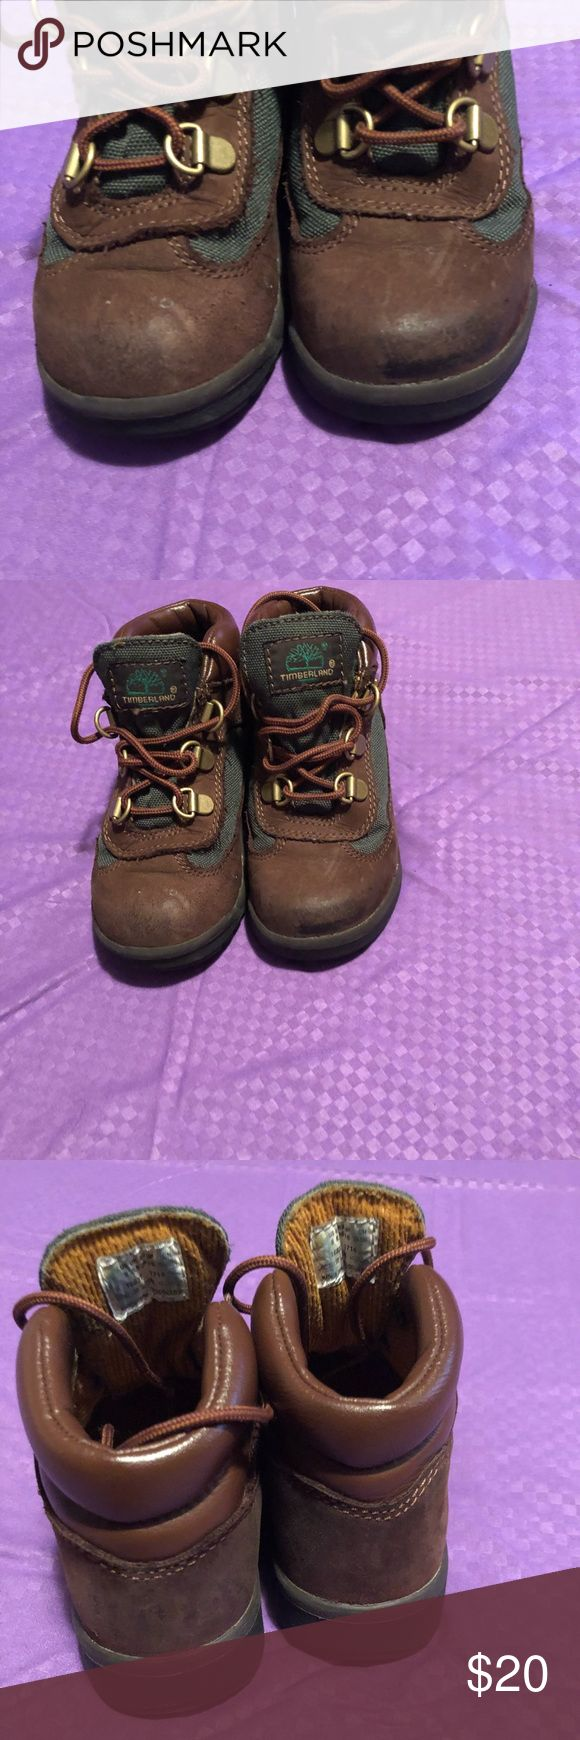 Toddler size 10 Timberland boots Selling little boys toddler size brown and green timberland boots. A couple of scuffs on the front tip of the shoe, but still in good condition. Smoke free/ pet free home Timberland Shoes Boots